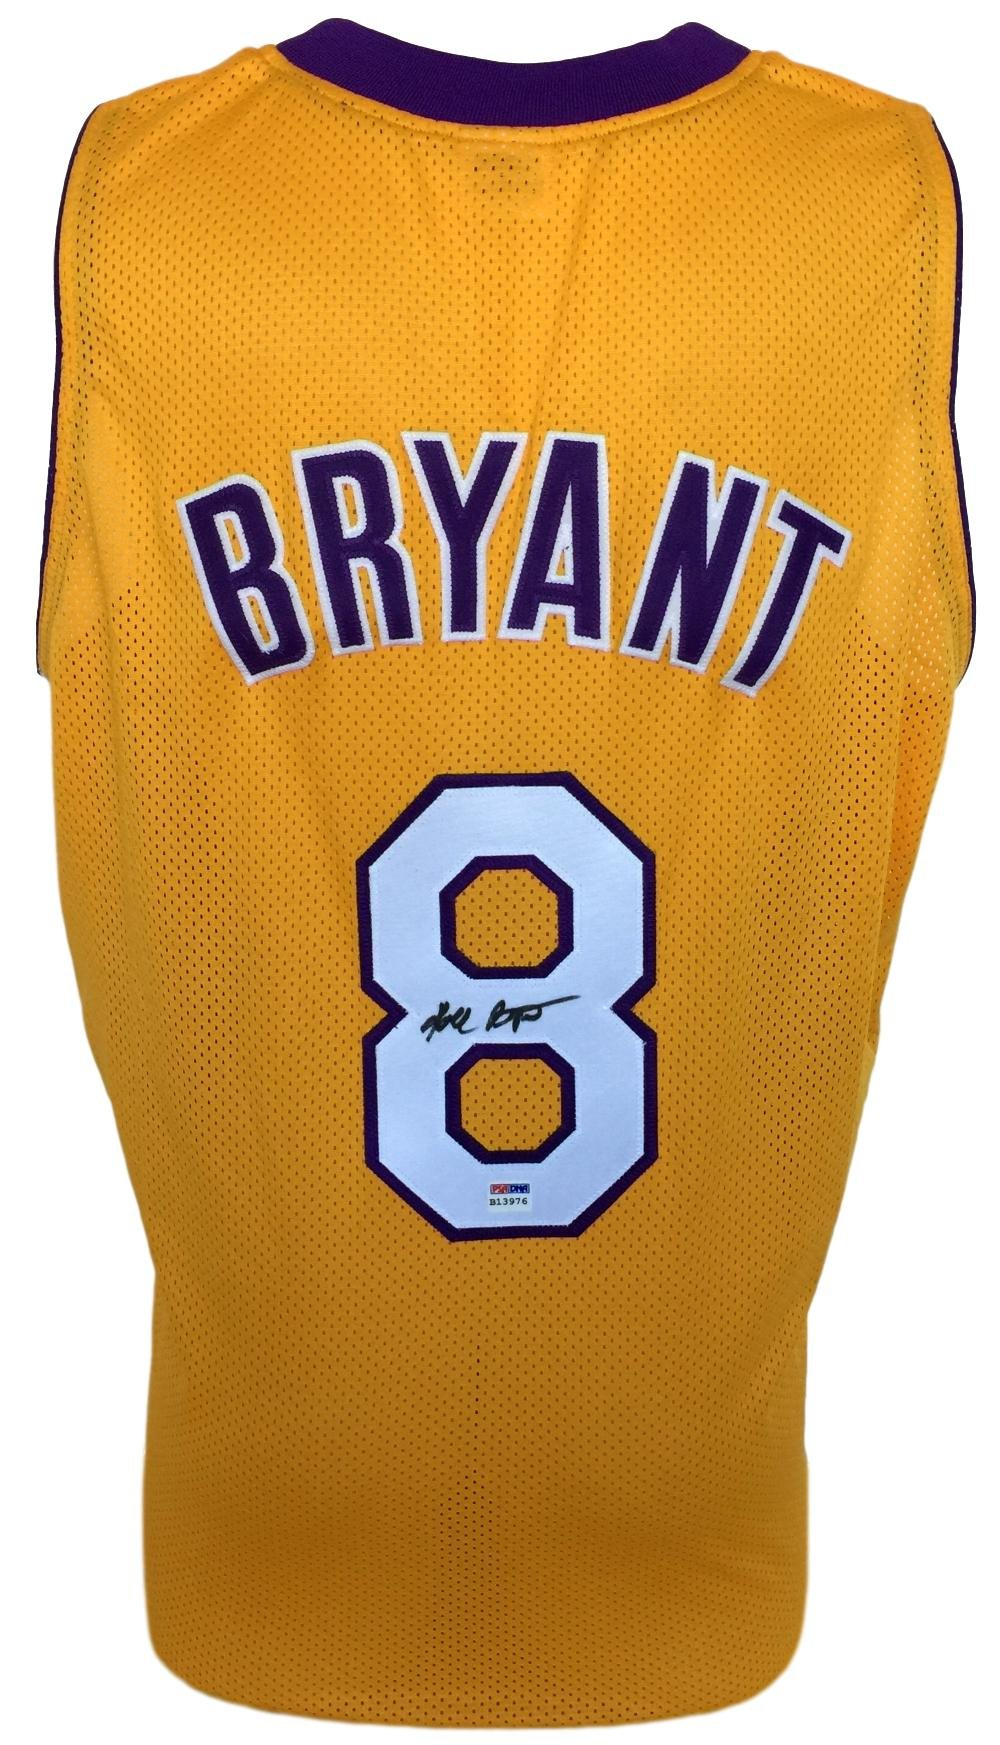 c5378655d3b Get Quotations · Lakers Kobe Bryant Signed Custom Yellow Pro-Style  Basketball Jersey PSA - Authentic Autograph